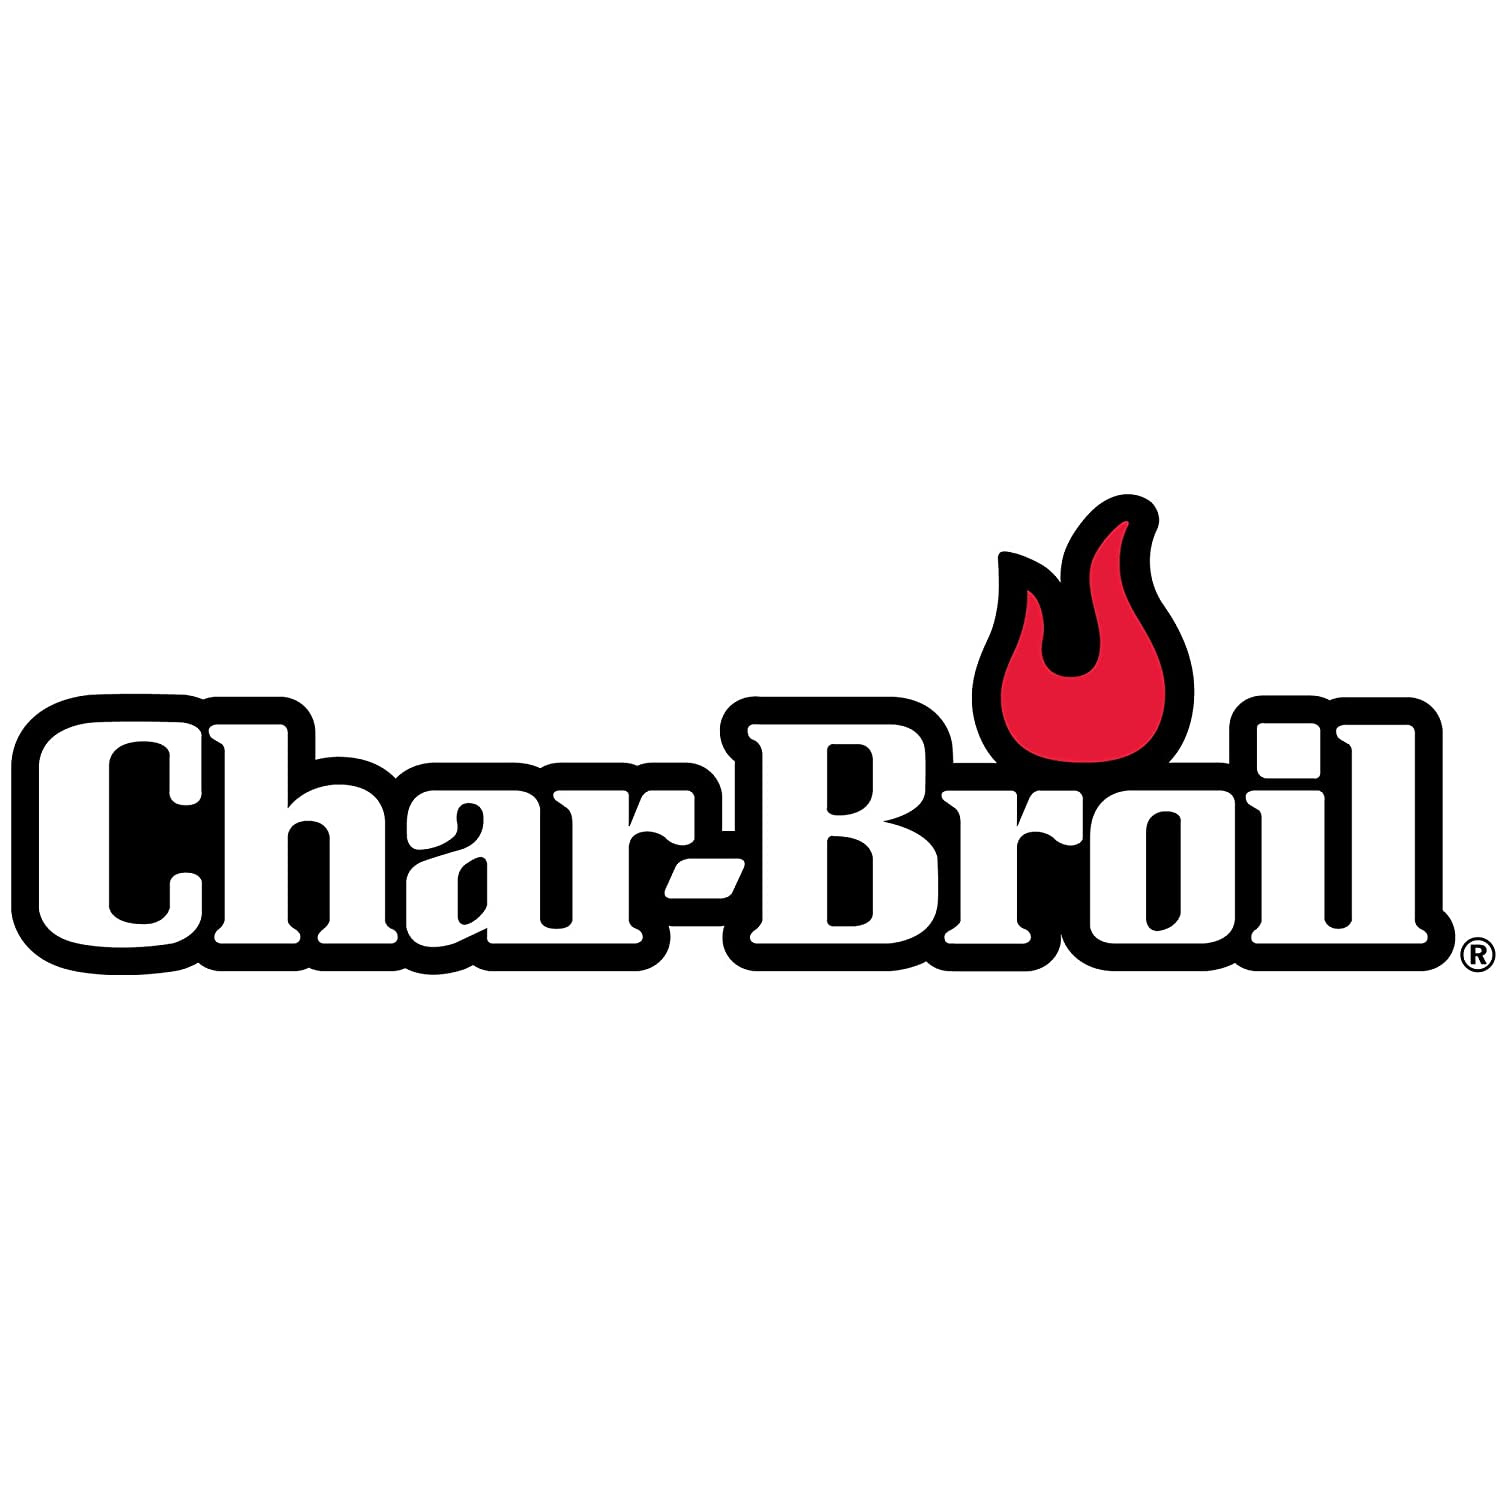 Char-Broil G550-5600-W1 Side Burner Replacement Part